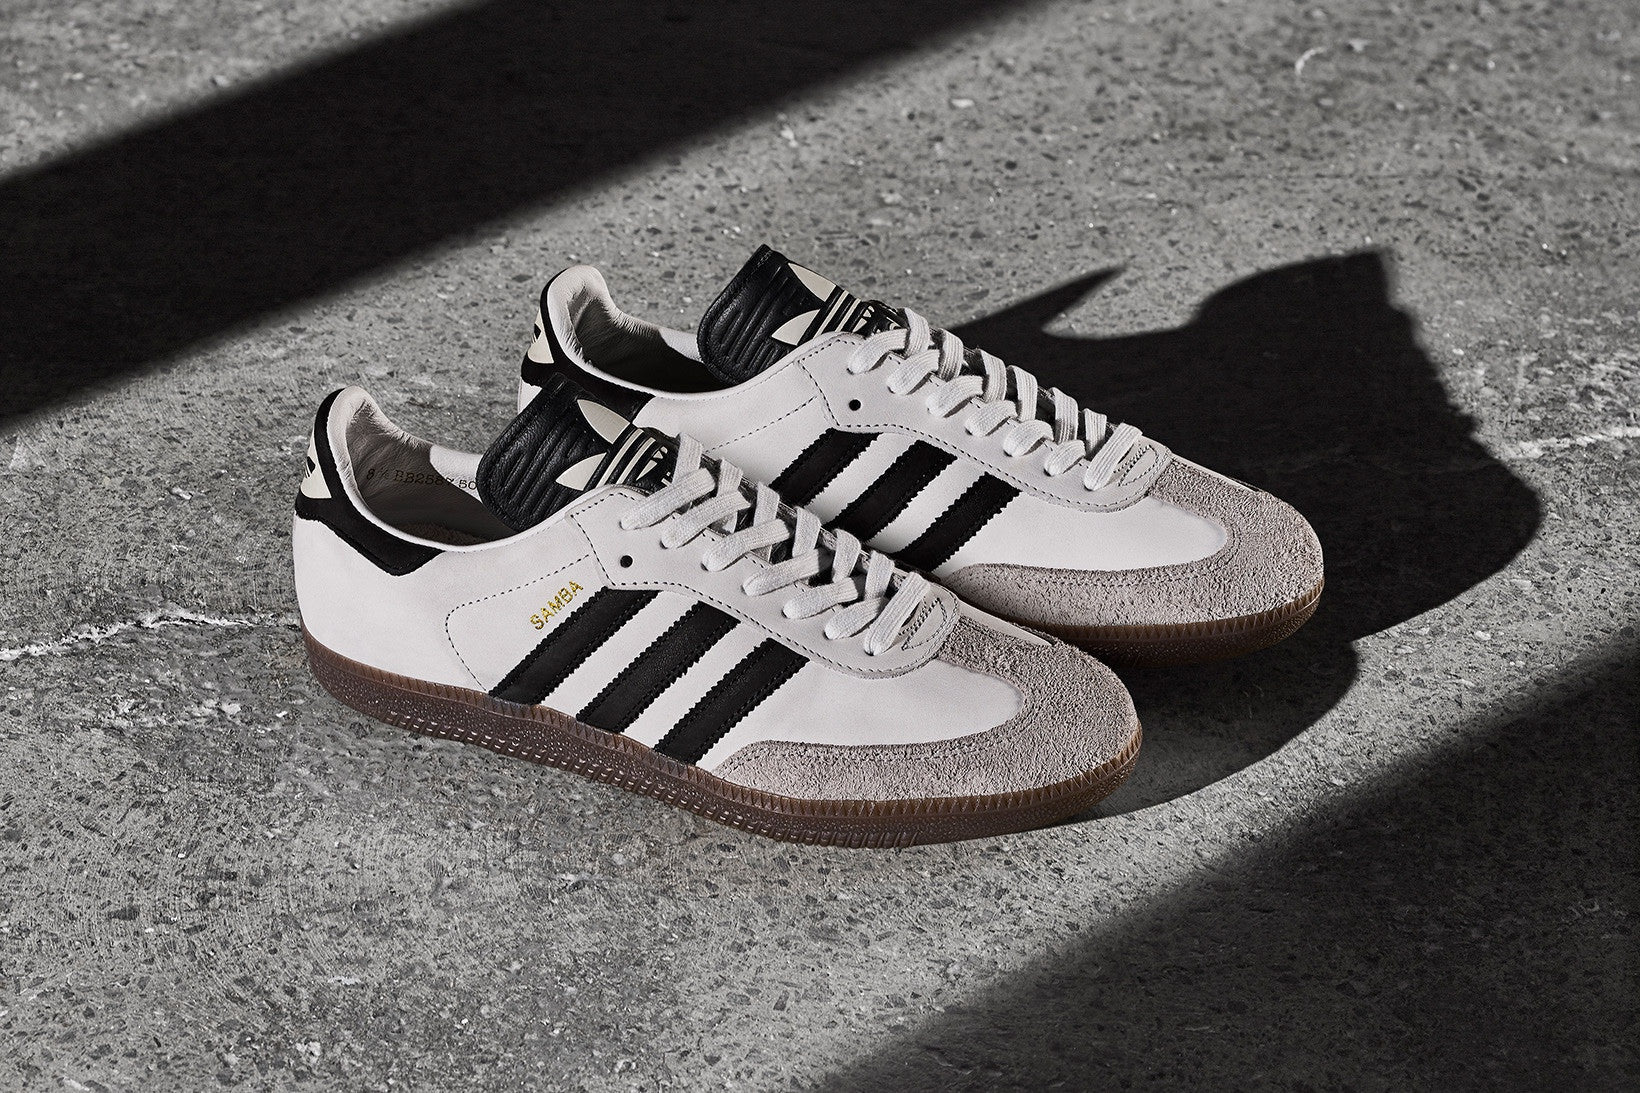 adidas Originals' Samba Model Returns With a Premium Twist